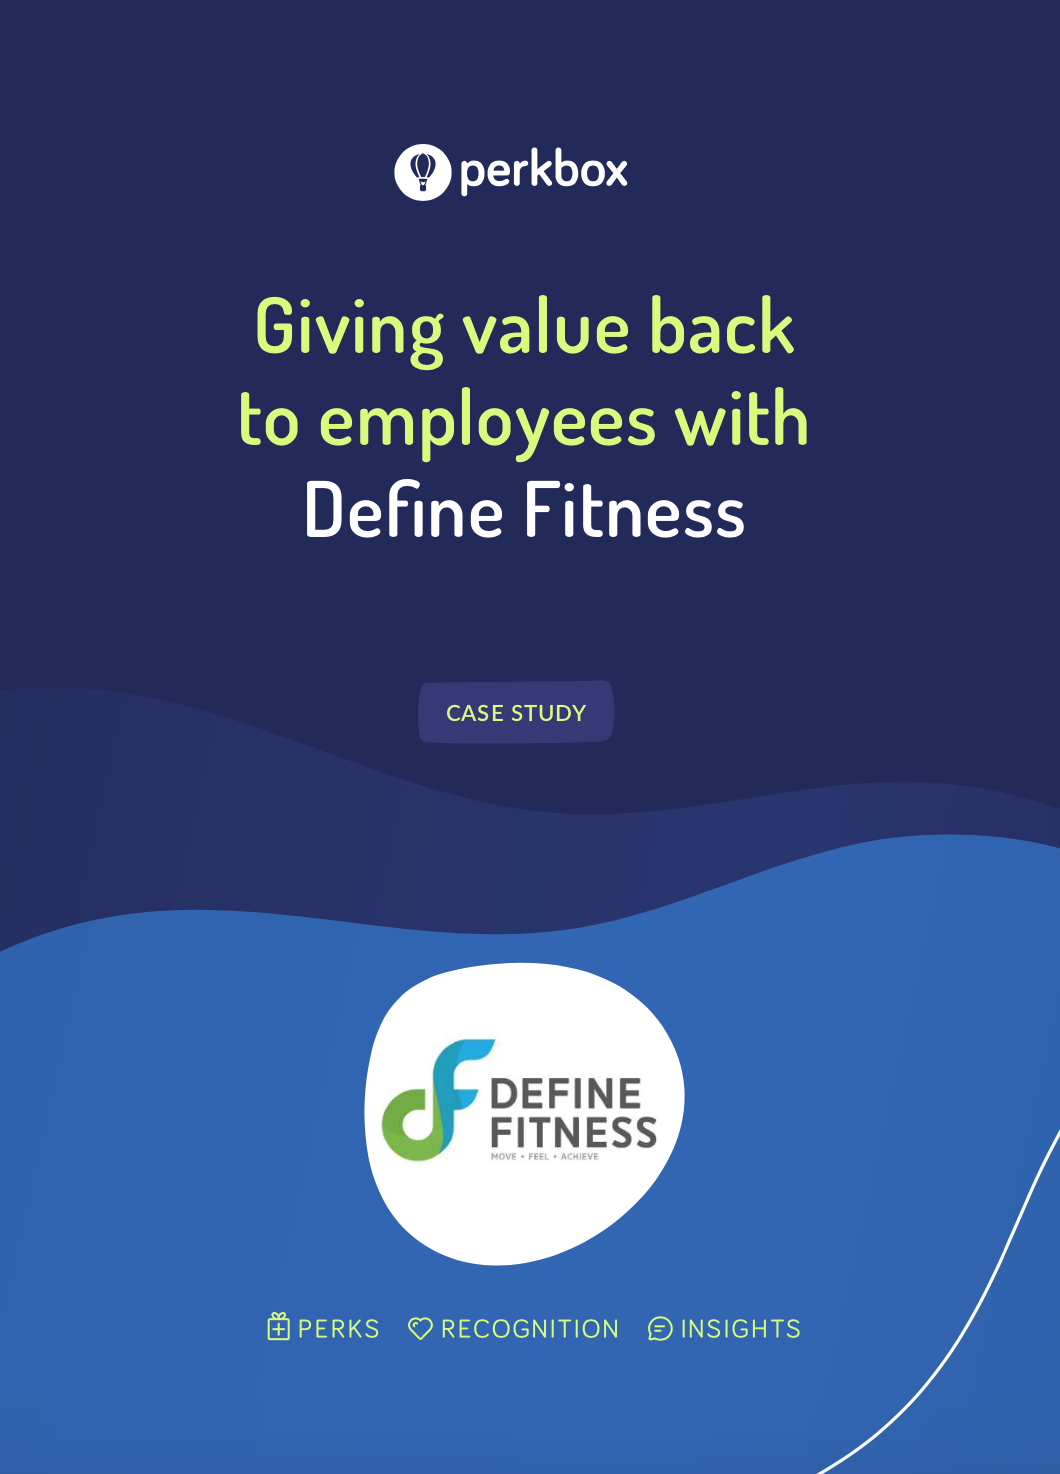 Giving value back to employees with Define Fitness